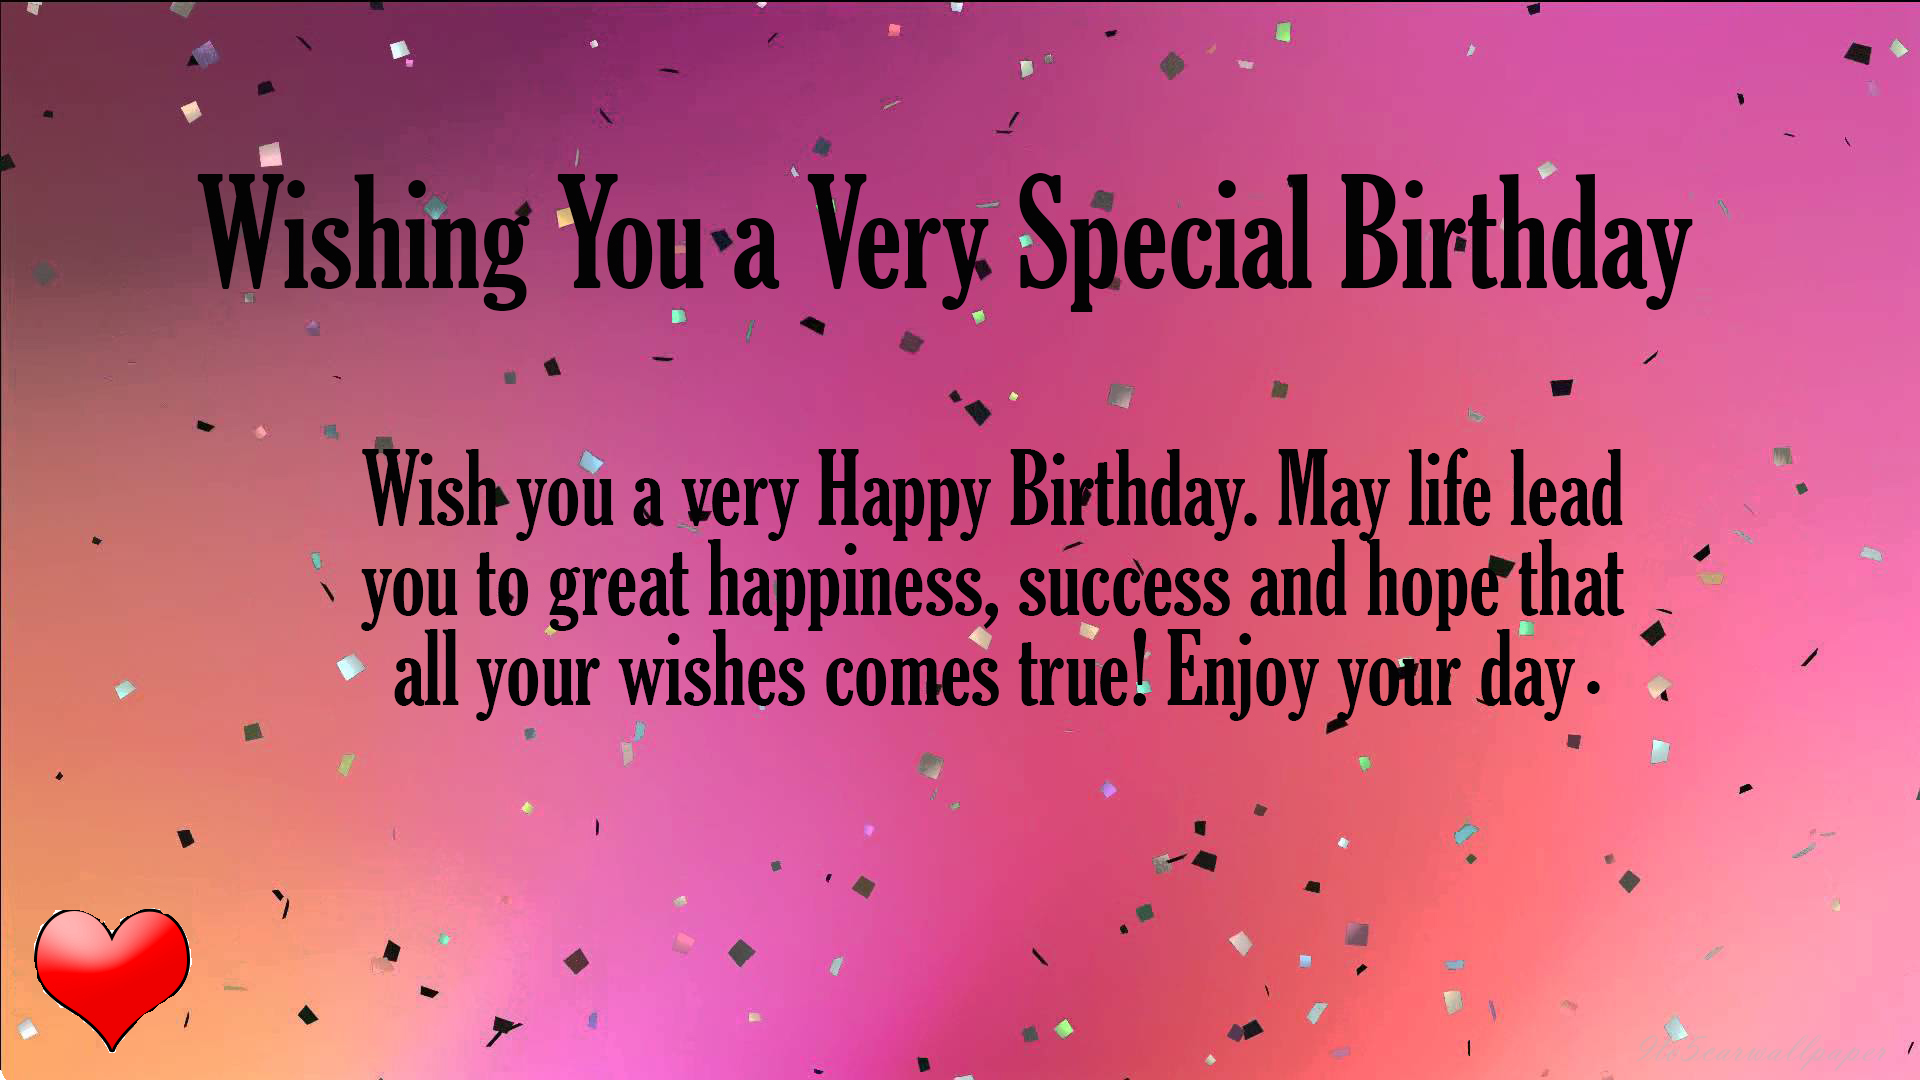 2018-Images-for-Birthday-Wishes-Quotes-Cards-and-Greetings